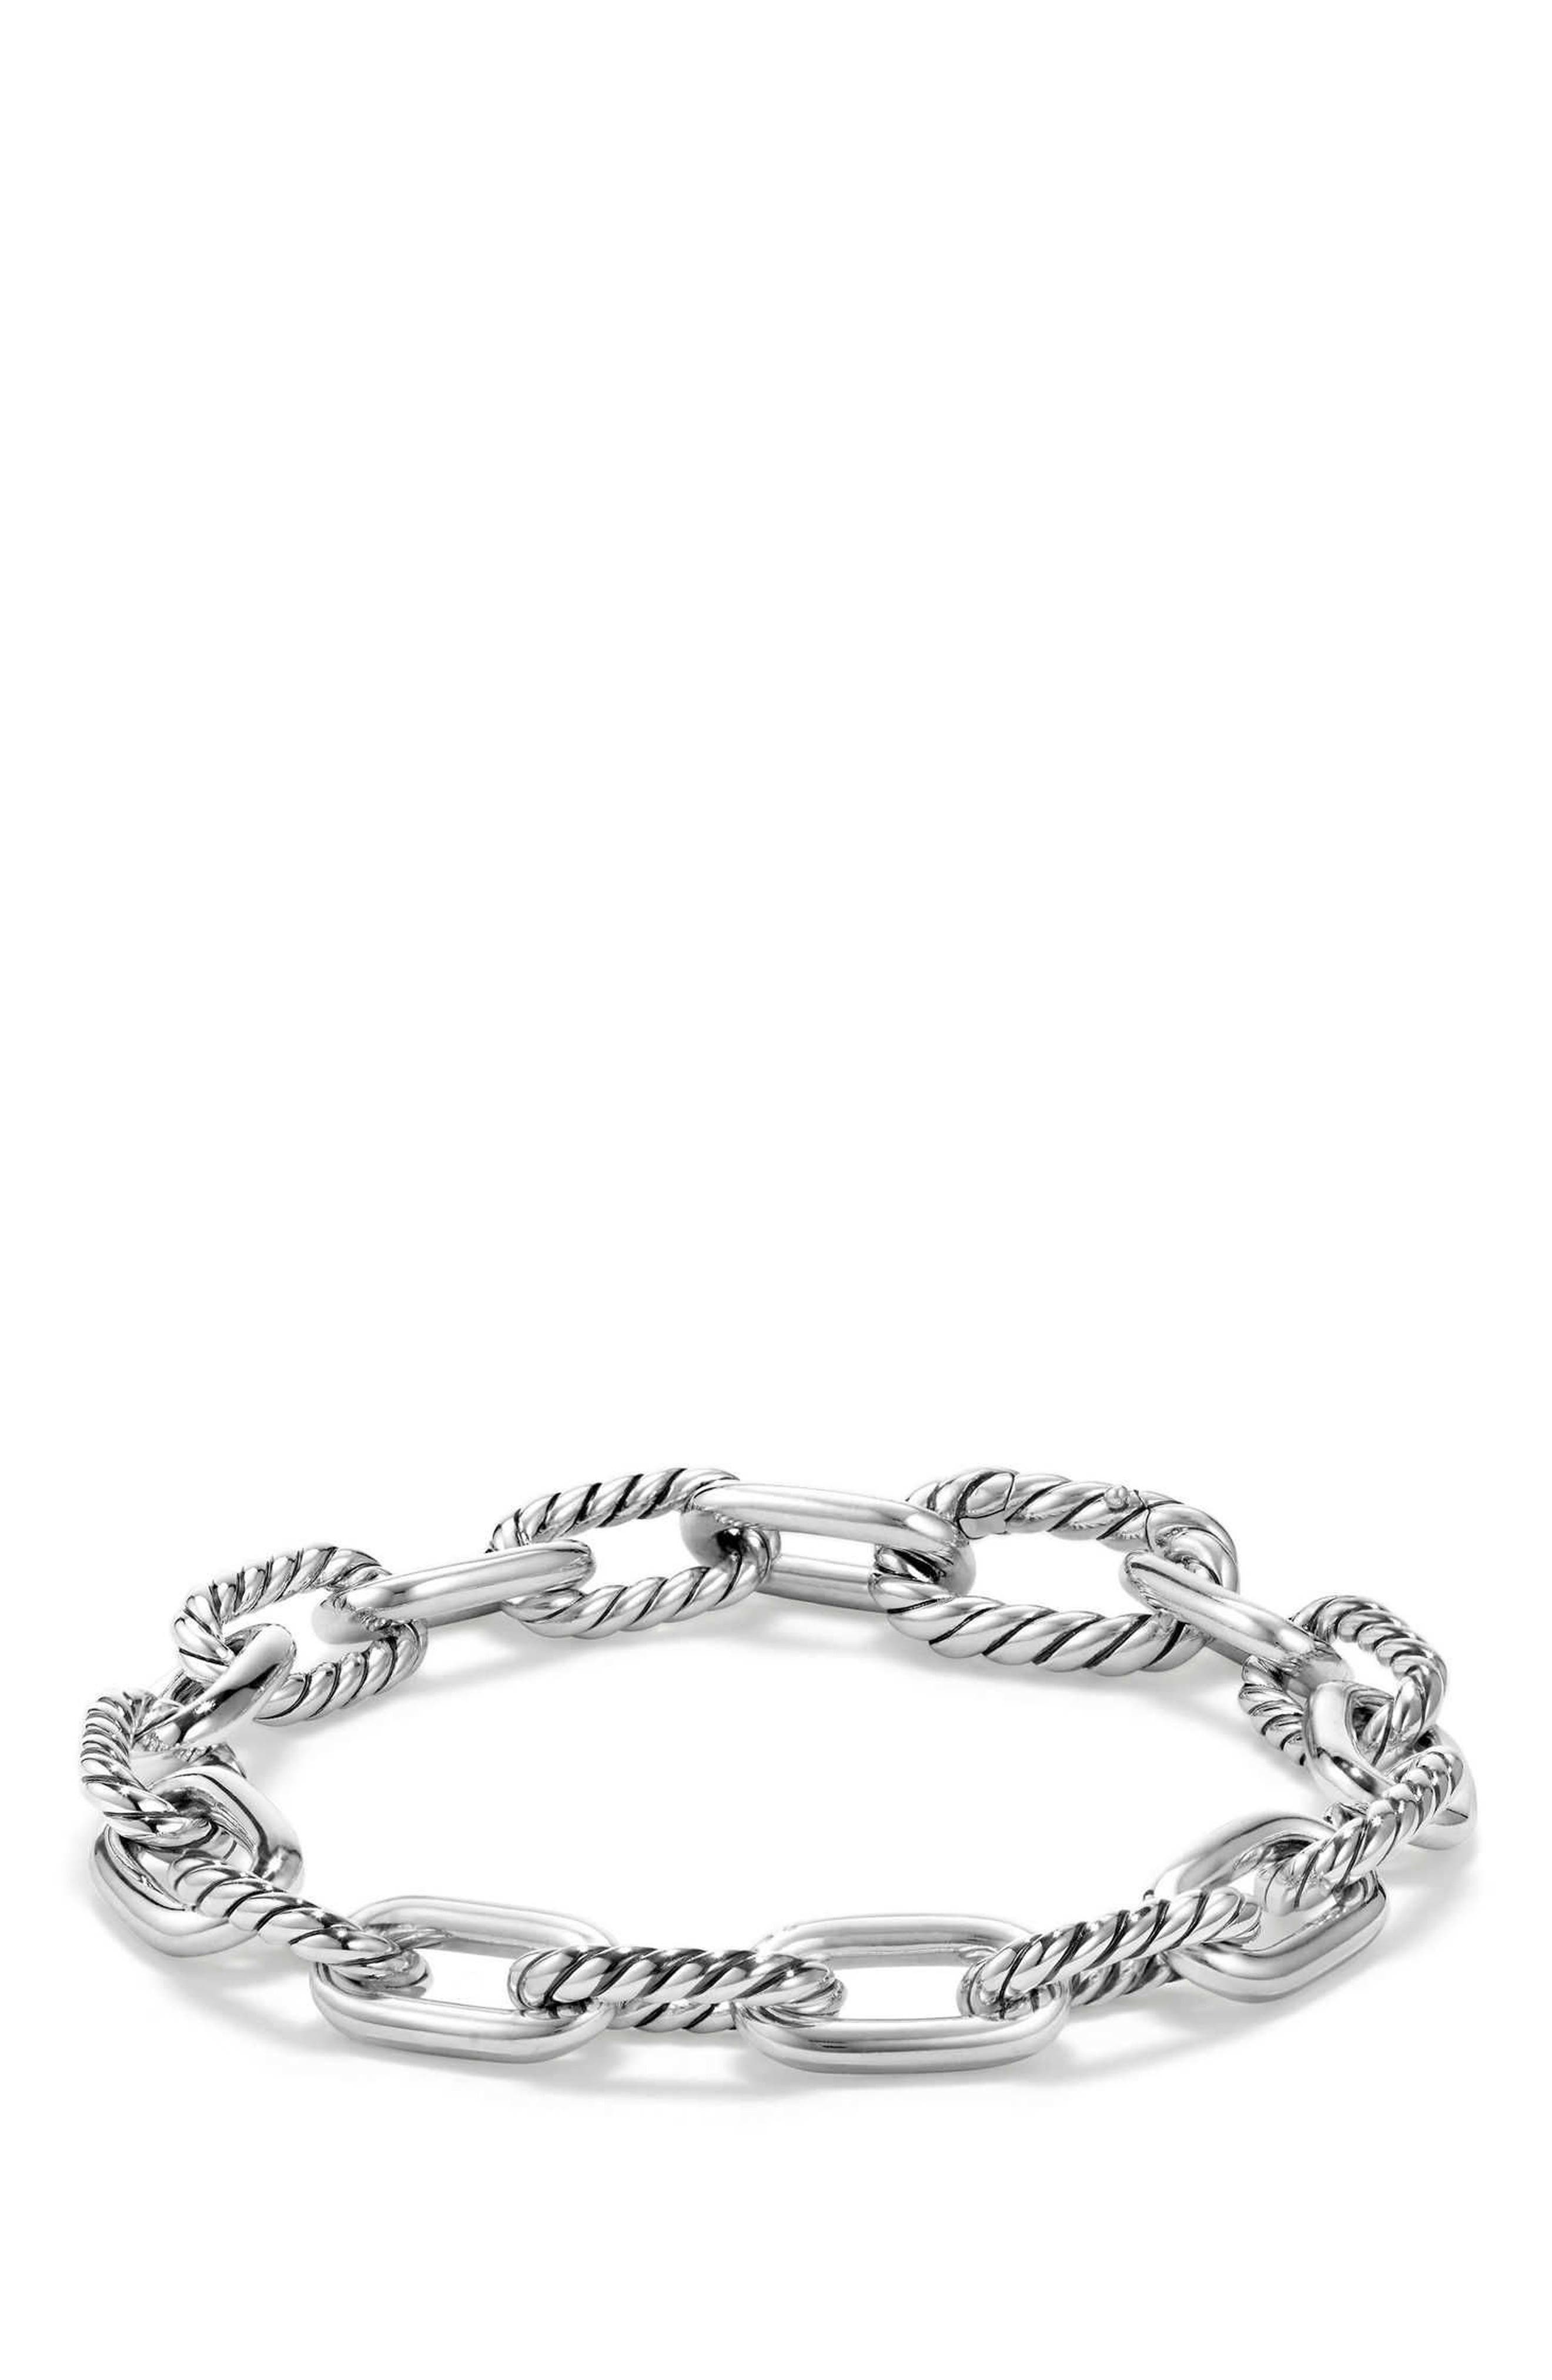 DY Madison Chain Small Bracelet,                         Main,                         color, SILVER